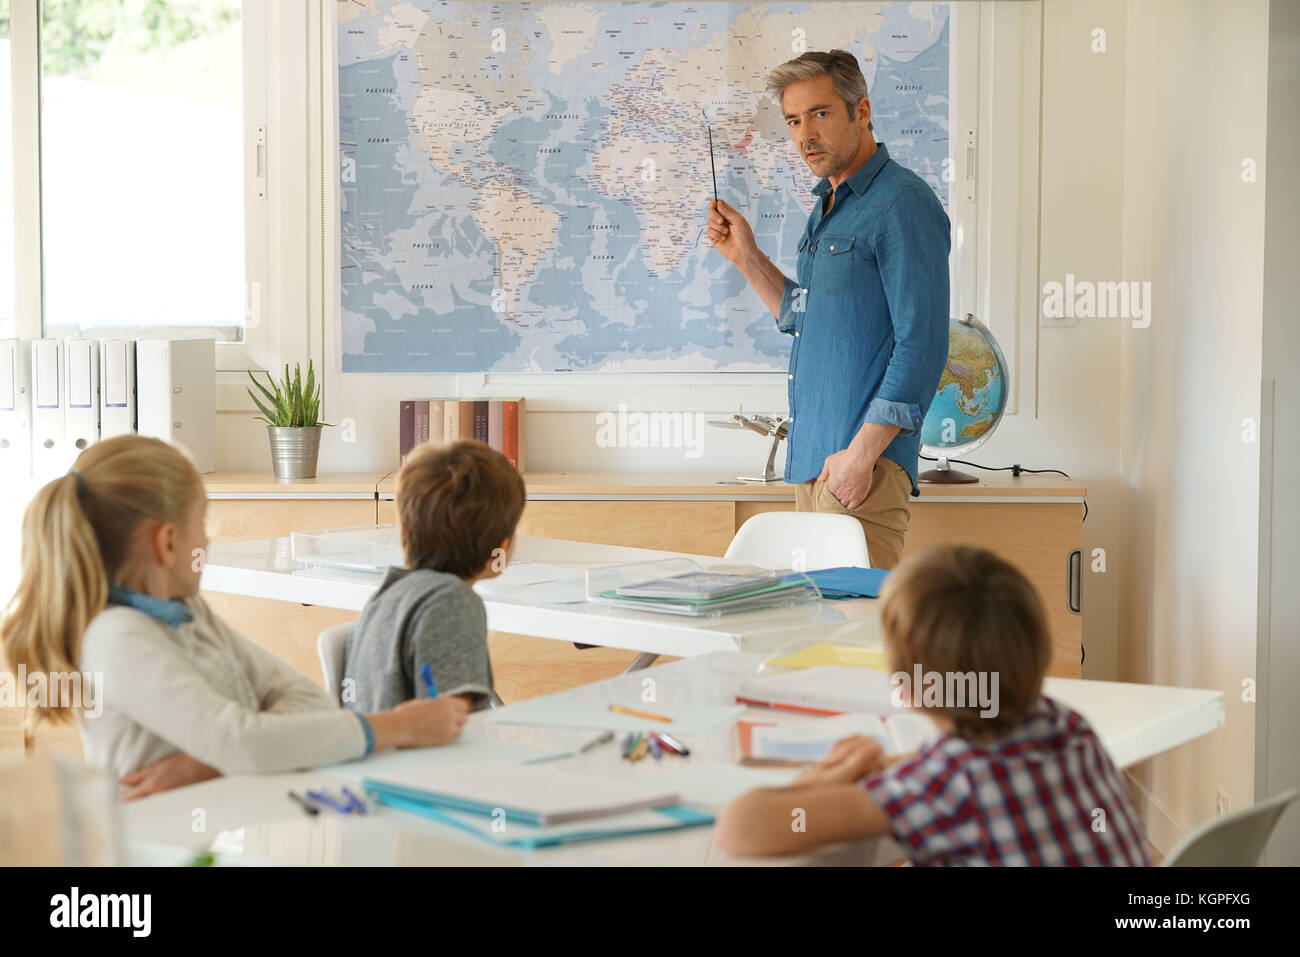 Teacher standing in classroom, kids attending geography lesson - Stock Image